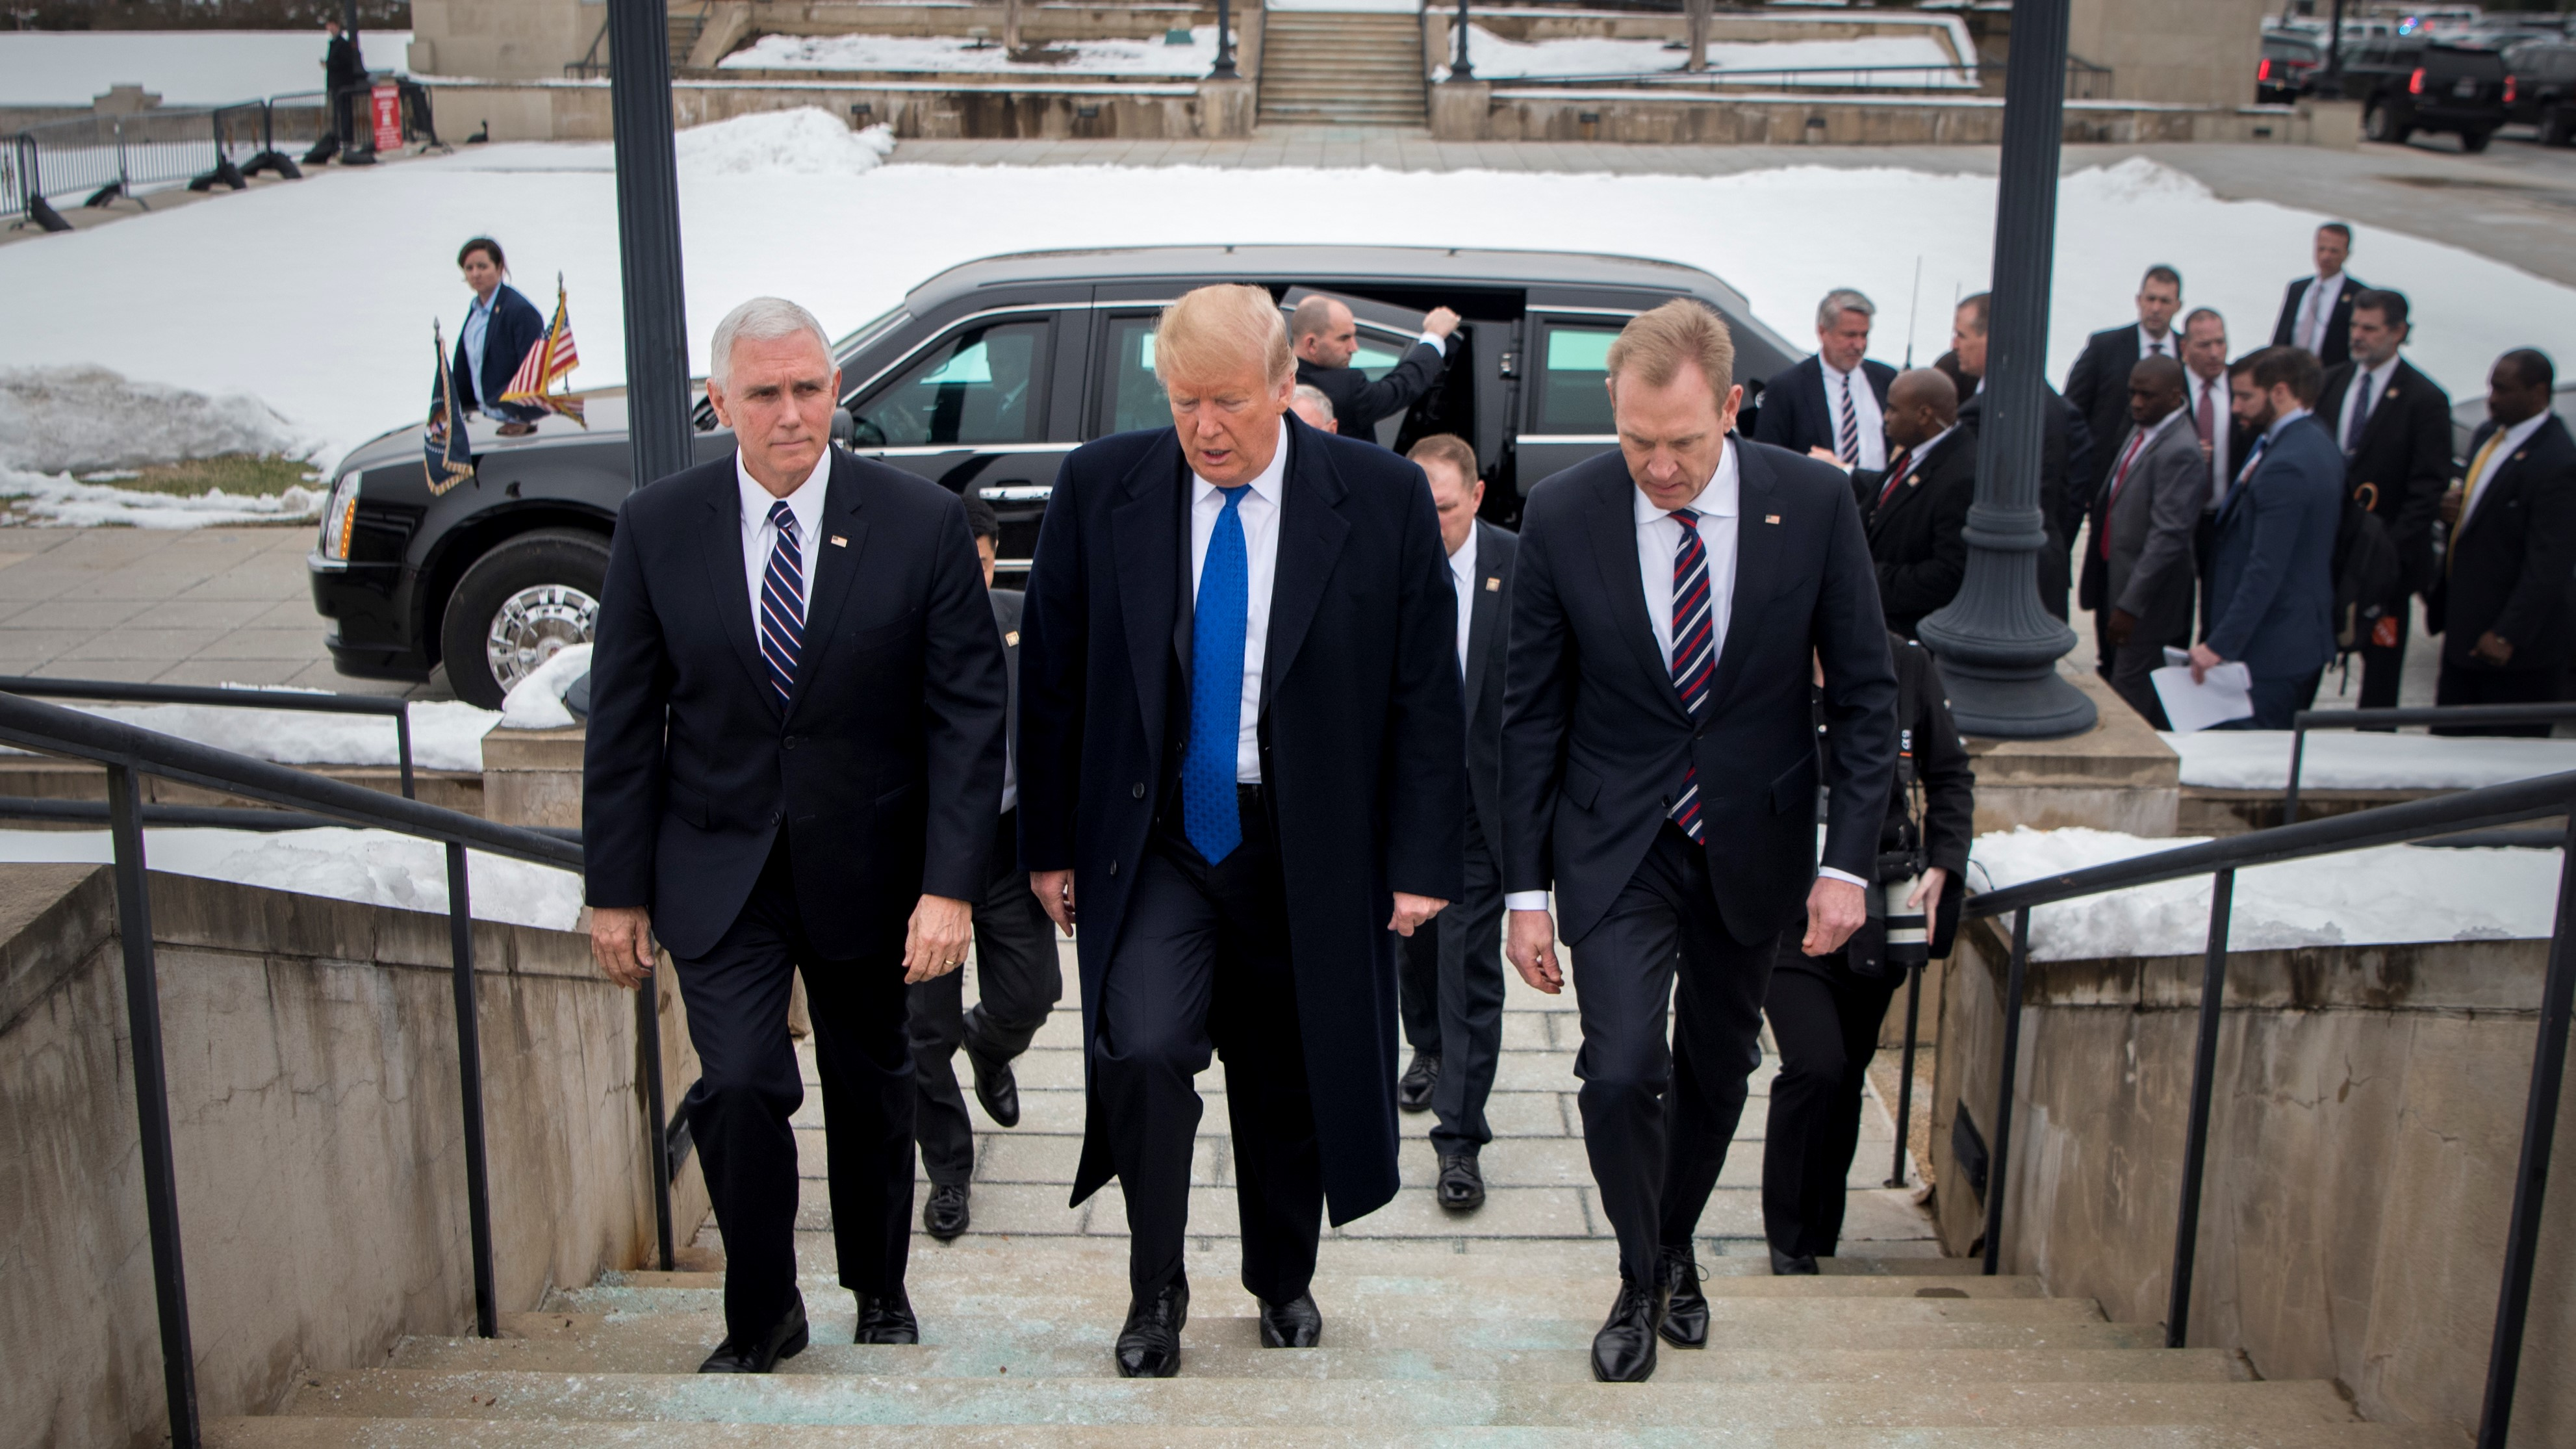 U.S. President Donald Trump and Vice President Mike Pence is greeted by U.S. Acting Secretary of Defense Patrick M. Shanahan as they arrive at the Pentagon, Jan 17, 2019. (DoD photo by Tech Sgt. Vernon Young Jr.)